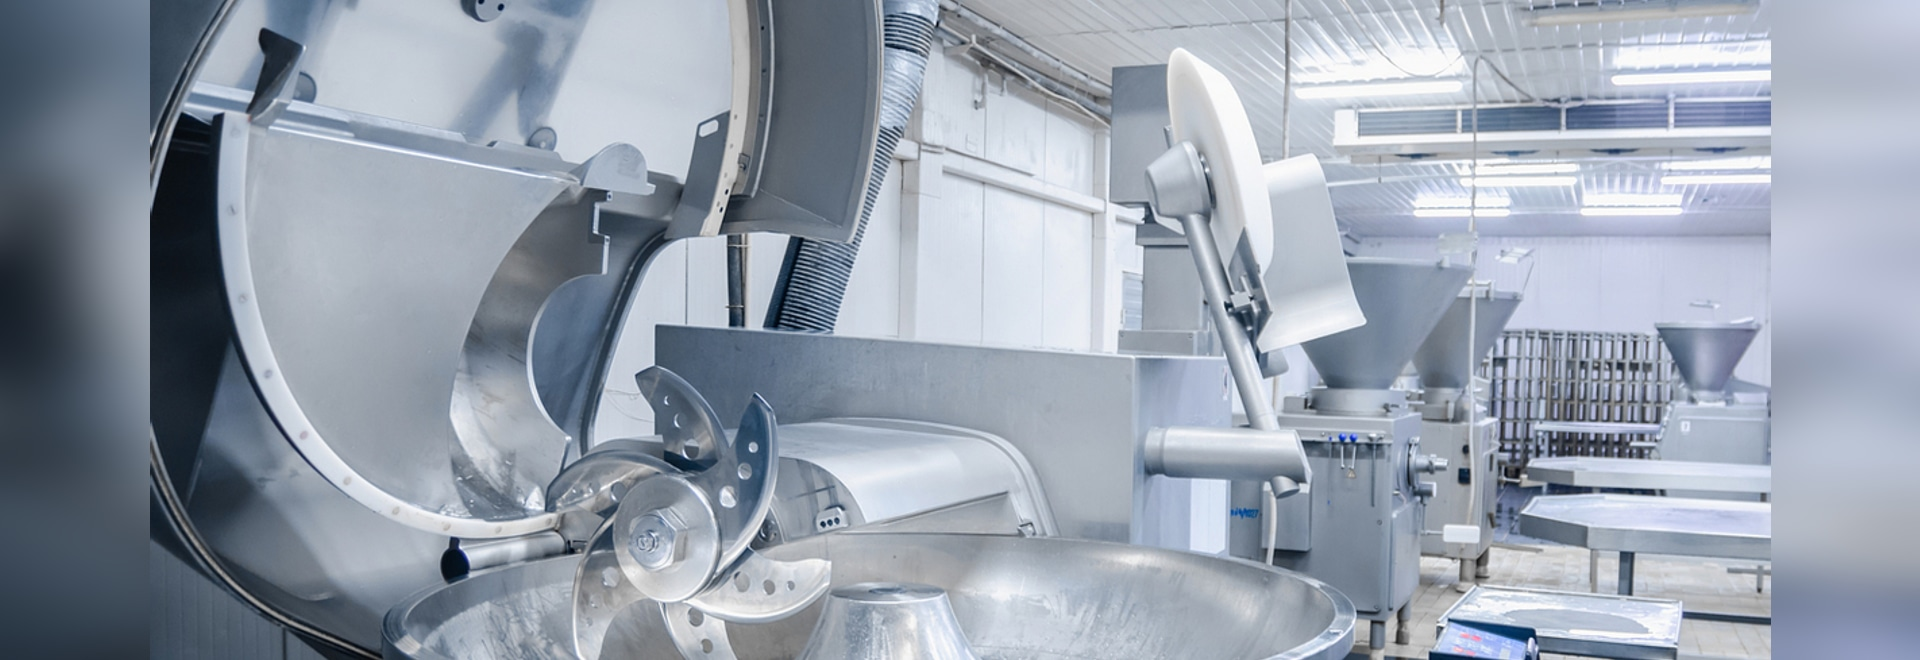 Data: May Shows Year's First Increase in Number of Planned Food Mfg. Projects